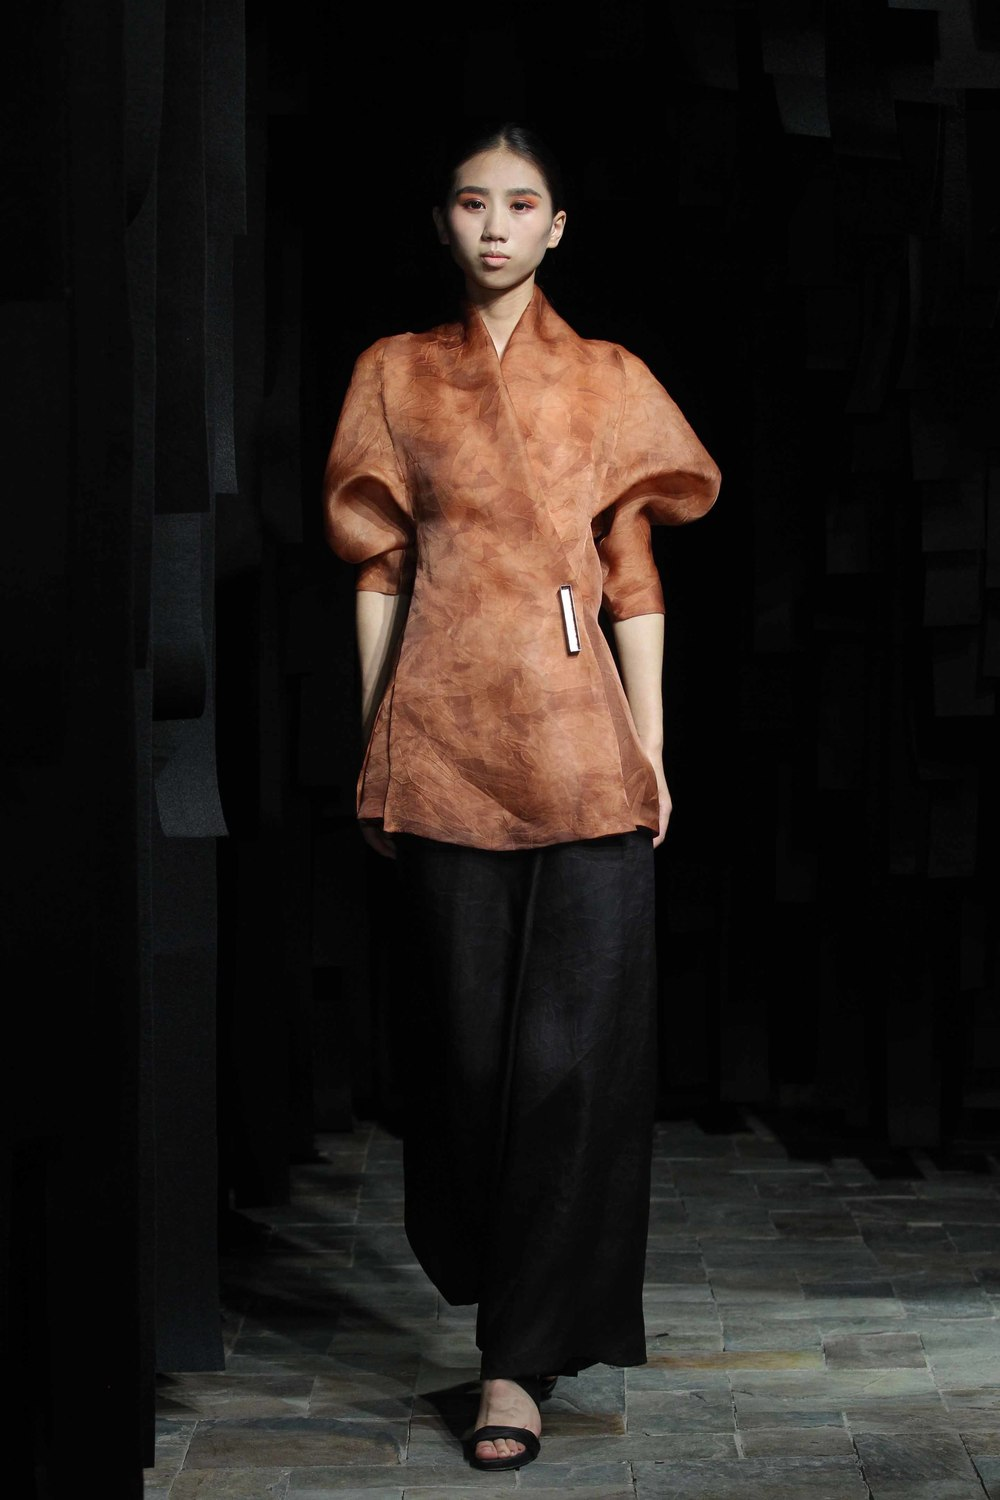 Wraparound hand-dyed organza blouse // 7/8 tea-silk wraparound pants